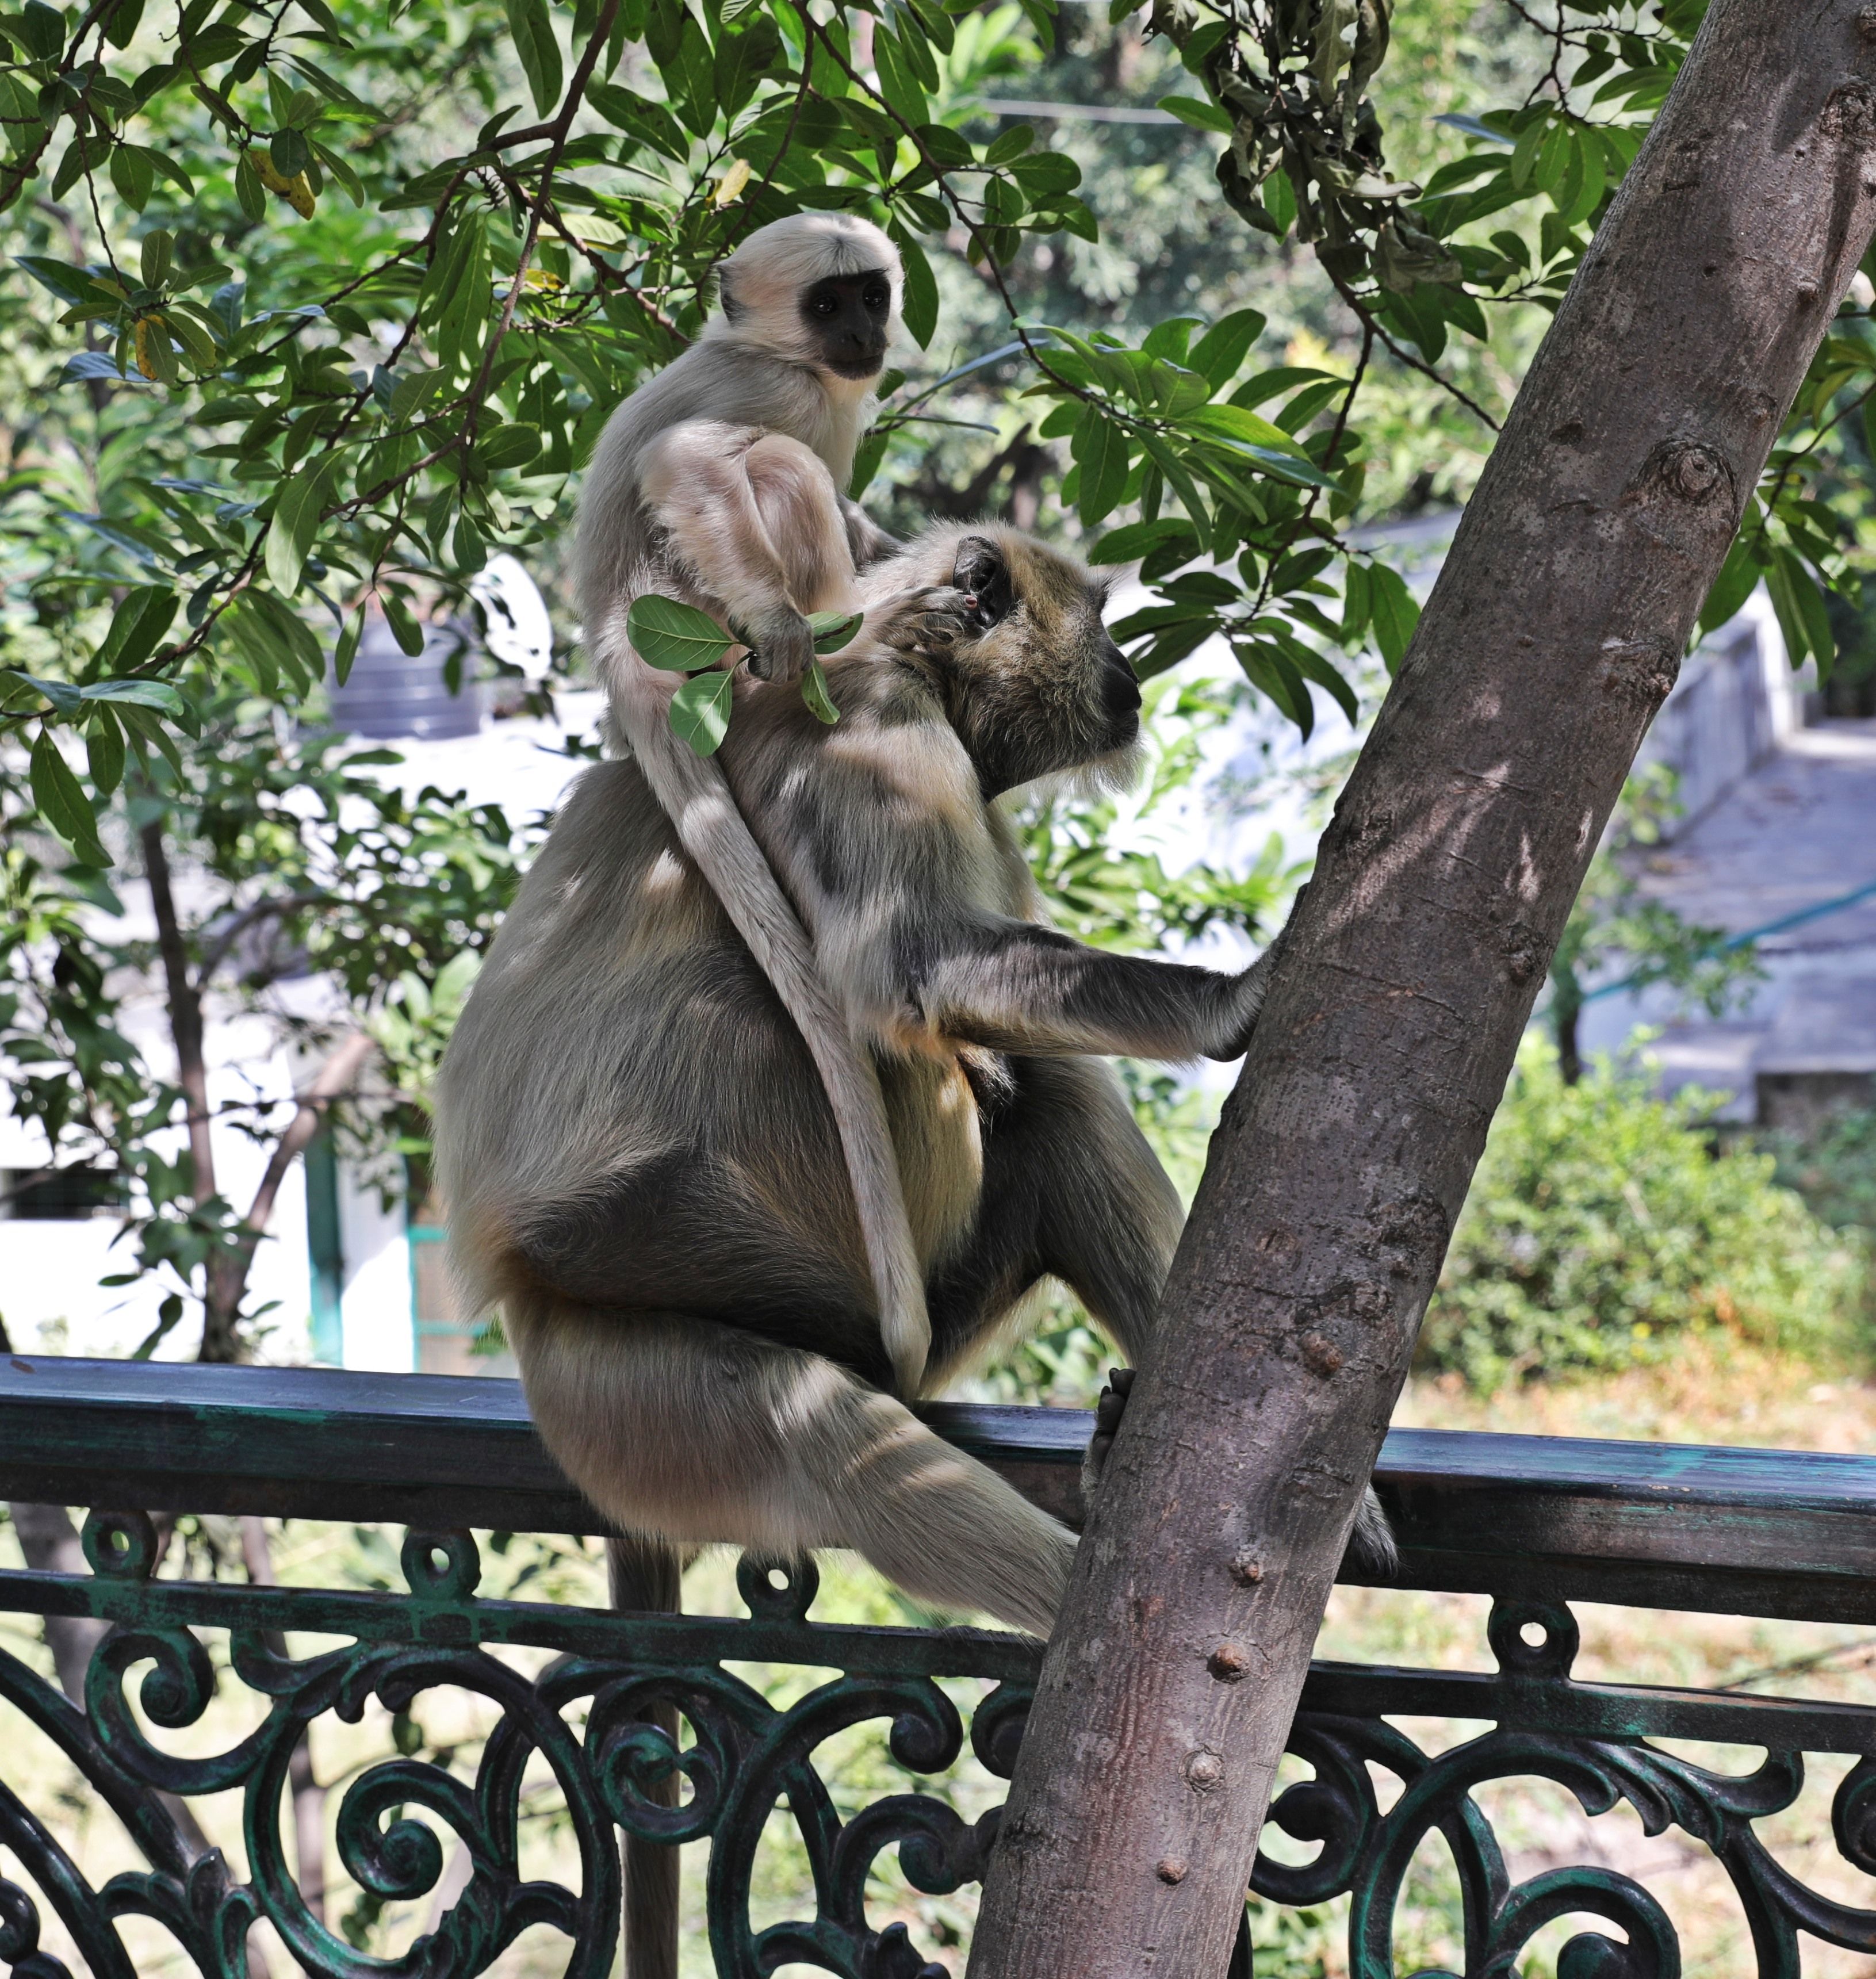 Grey Langur monkeys in Rishikesh